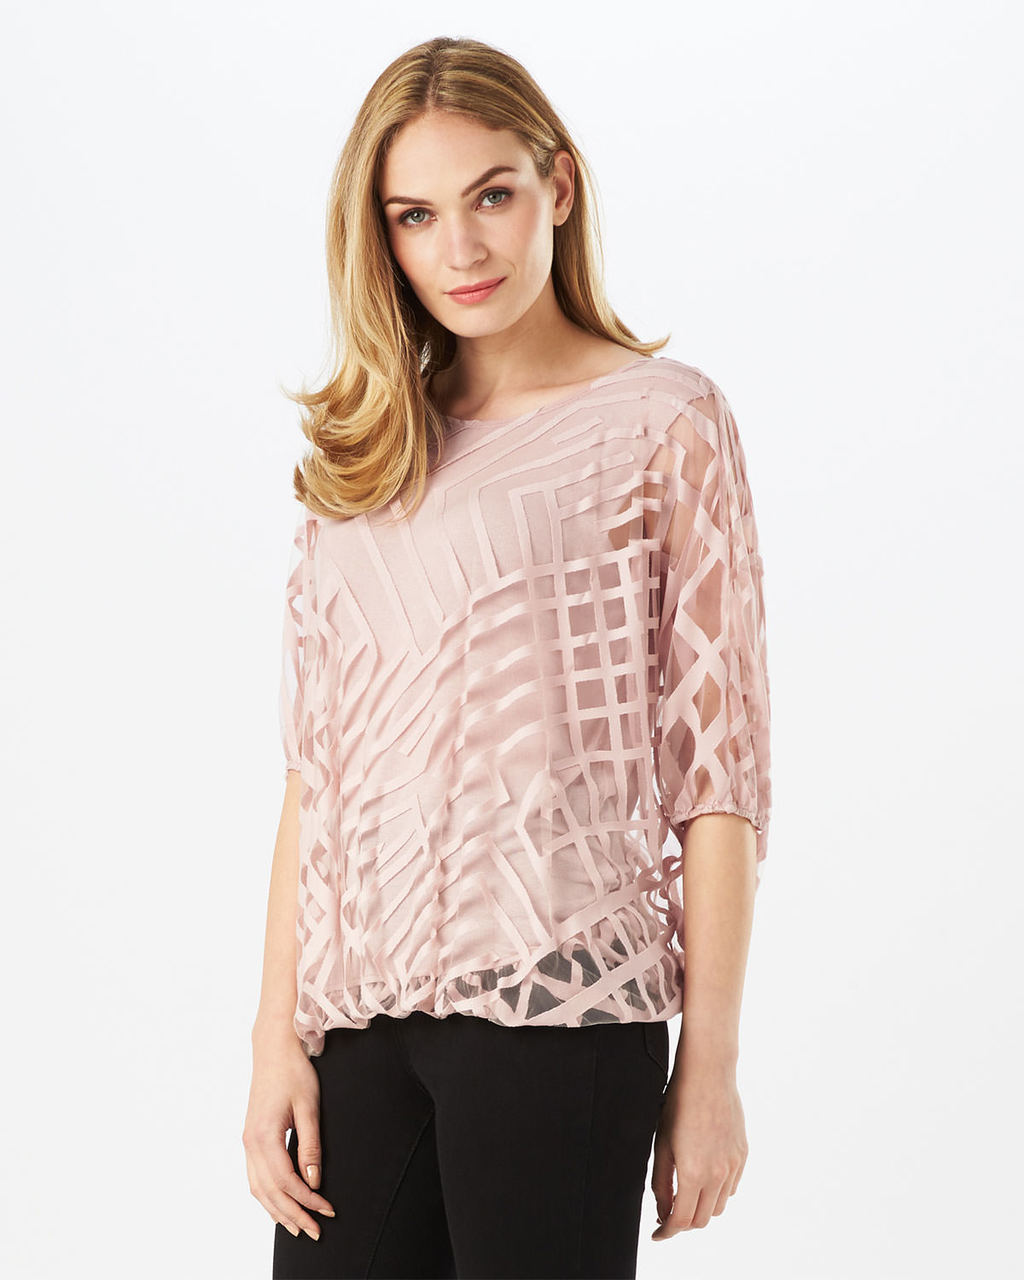 Eve Geo Burnout Top - neckline: round neck; pattern: plain; predominant colour: blush; occasions: evening; length: standard; style: top; fit: body skimming; sleeve length: 3/4 length; sleeve style: standard; texture group: lace; pattern type: fabric; fibres: viscose/rayon - mix; embellishment: lace; season: s/s 2016; wardrobe: event